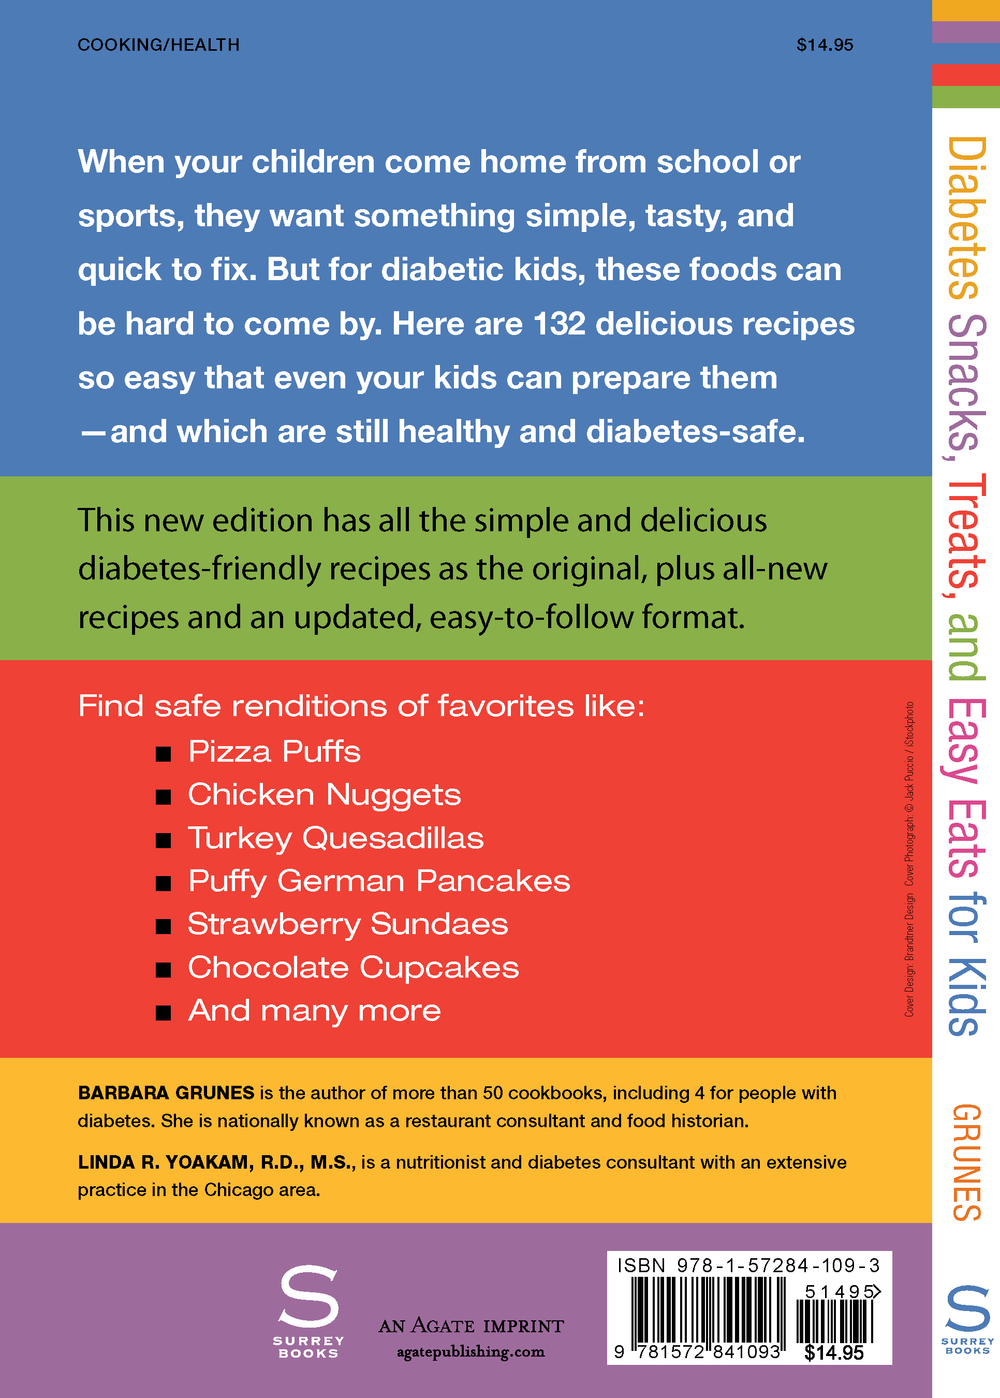 Diabetes Snacks Treats for Kids_Page_10.png